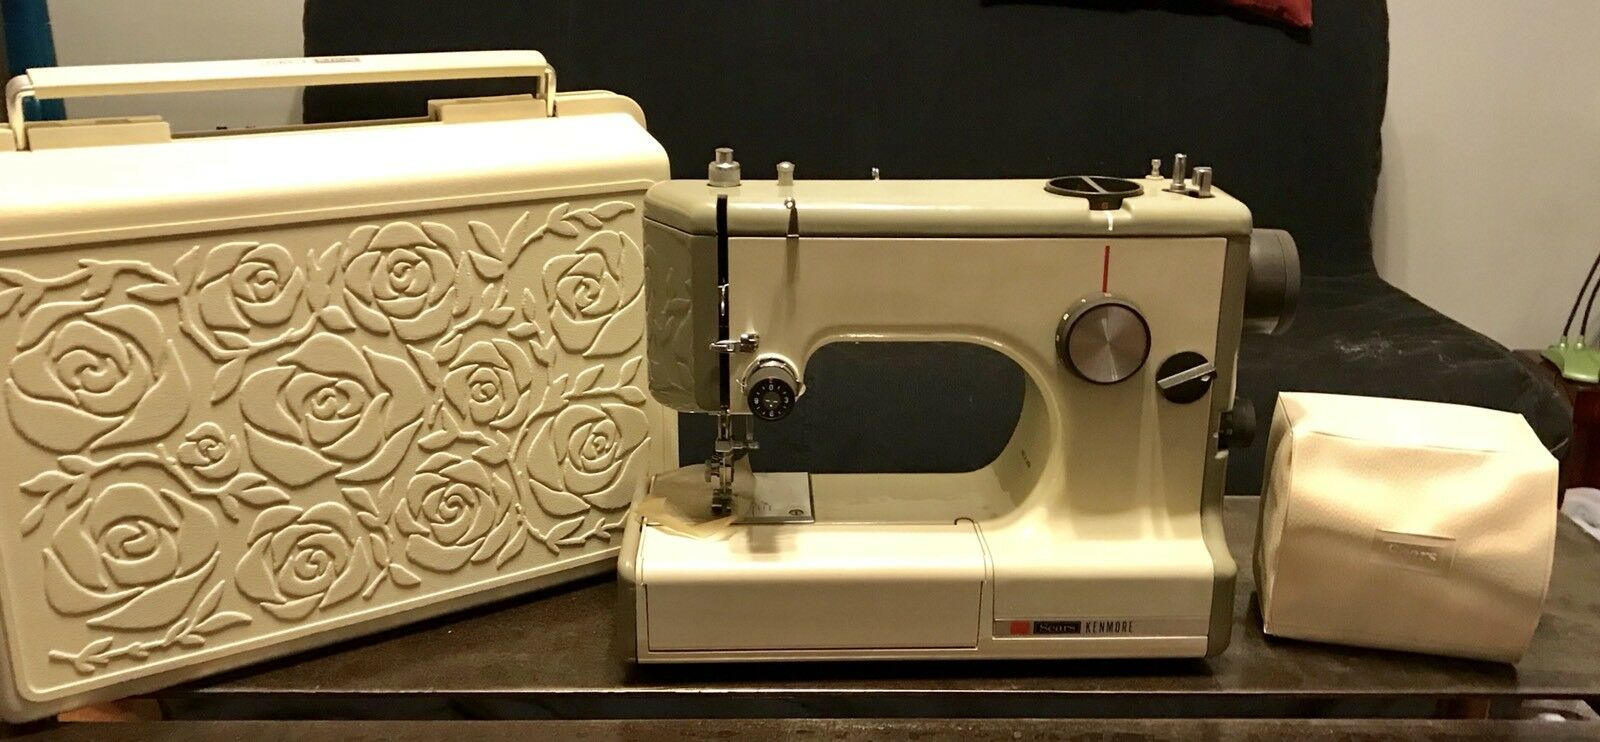 Vintage Sewing Machine Sears Kenmore Portable 158-10301 Case Portable NEVER  USED 1 of 12 See More